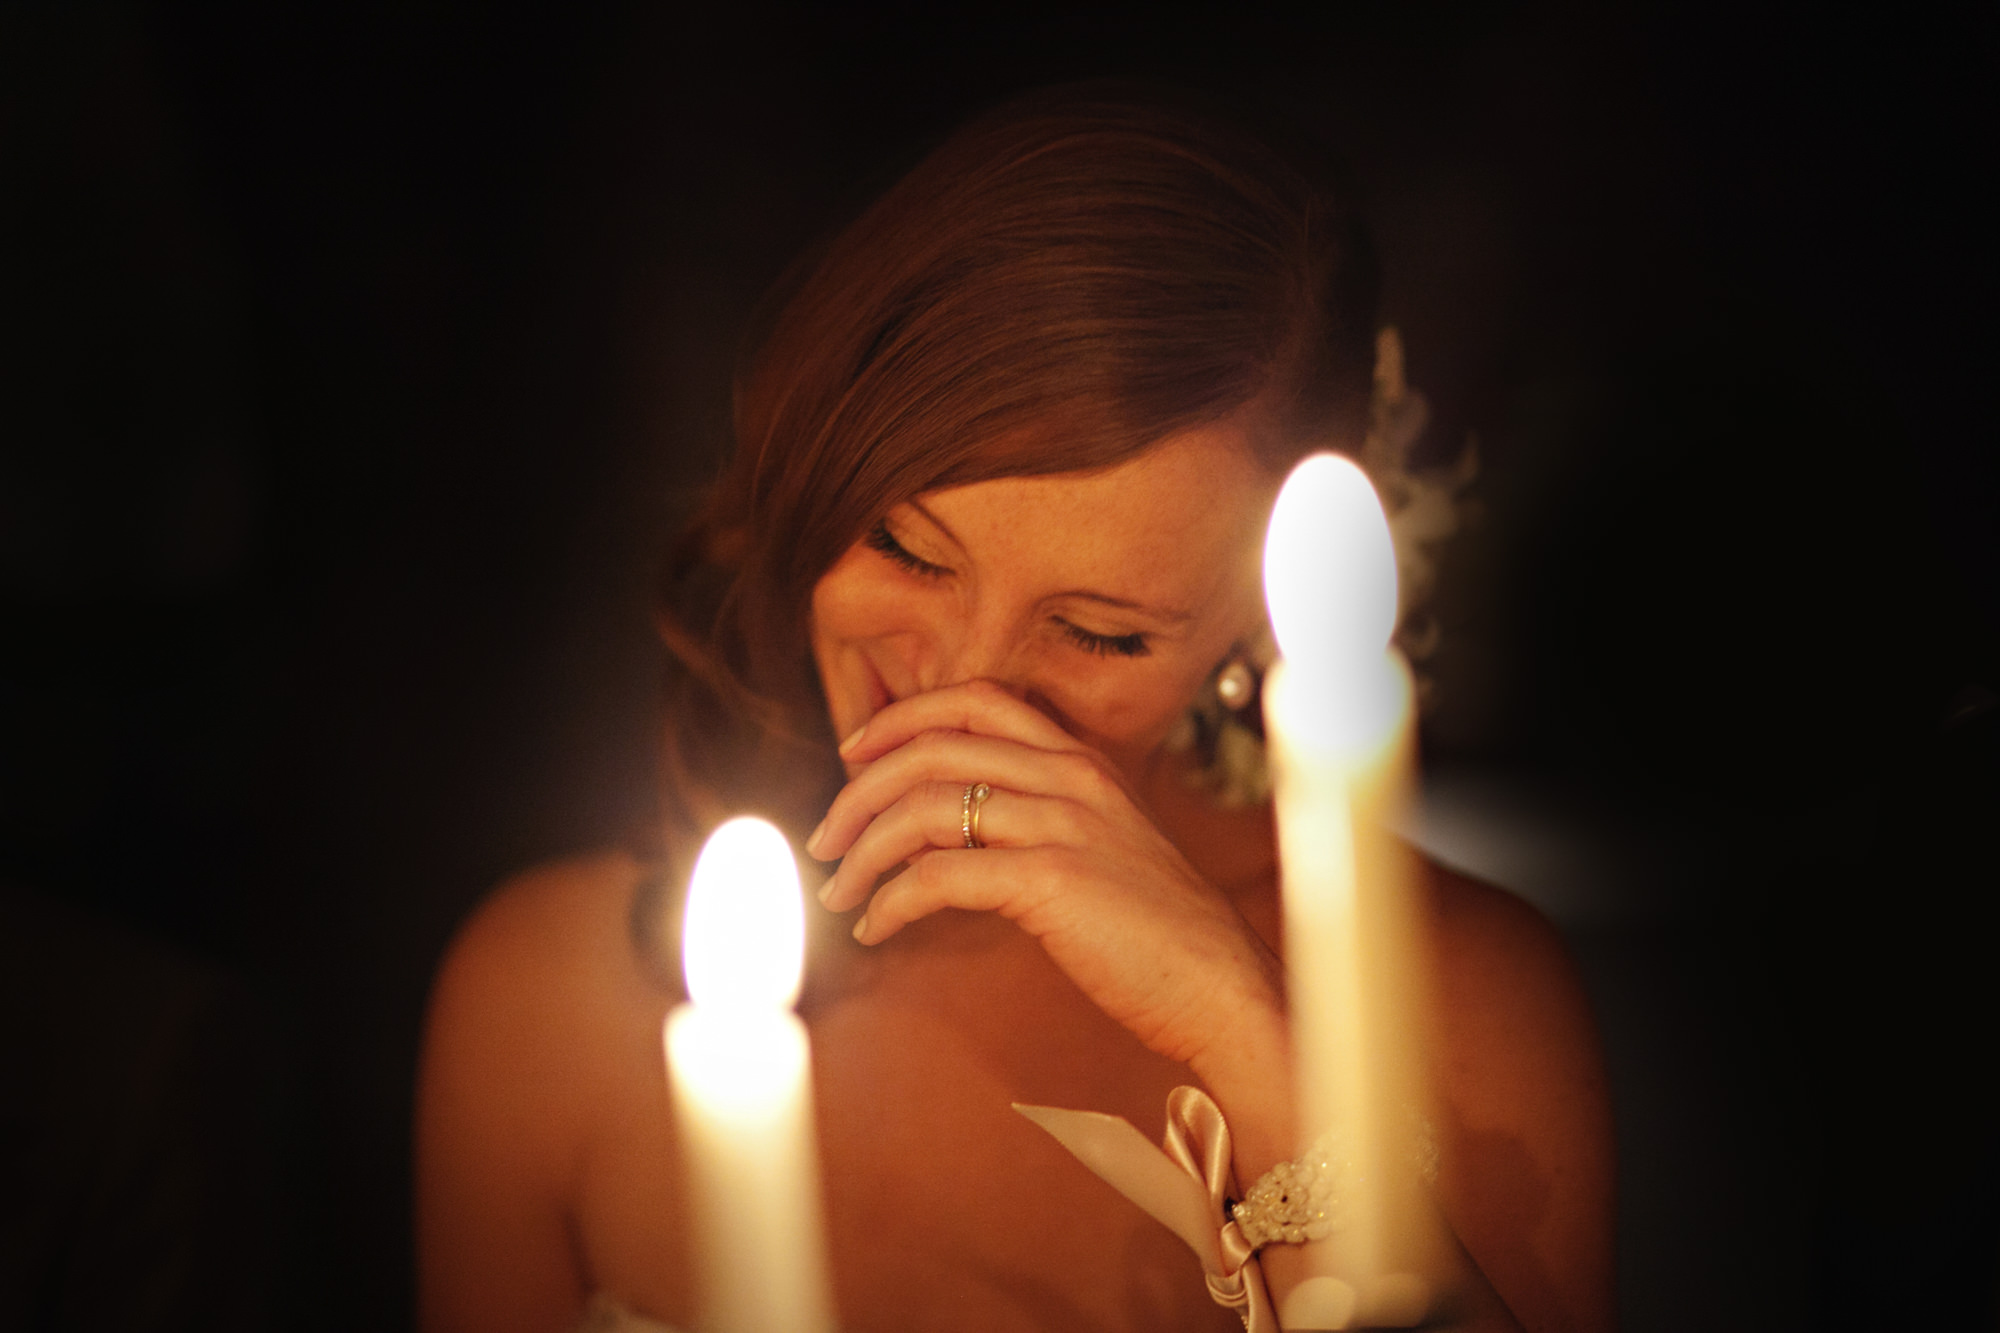 Bride shyly laughs behind candleight- PhotoJJ